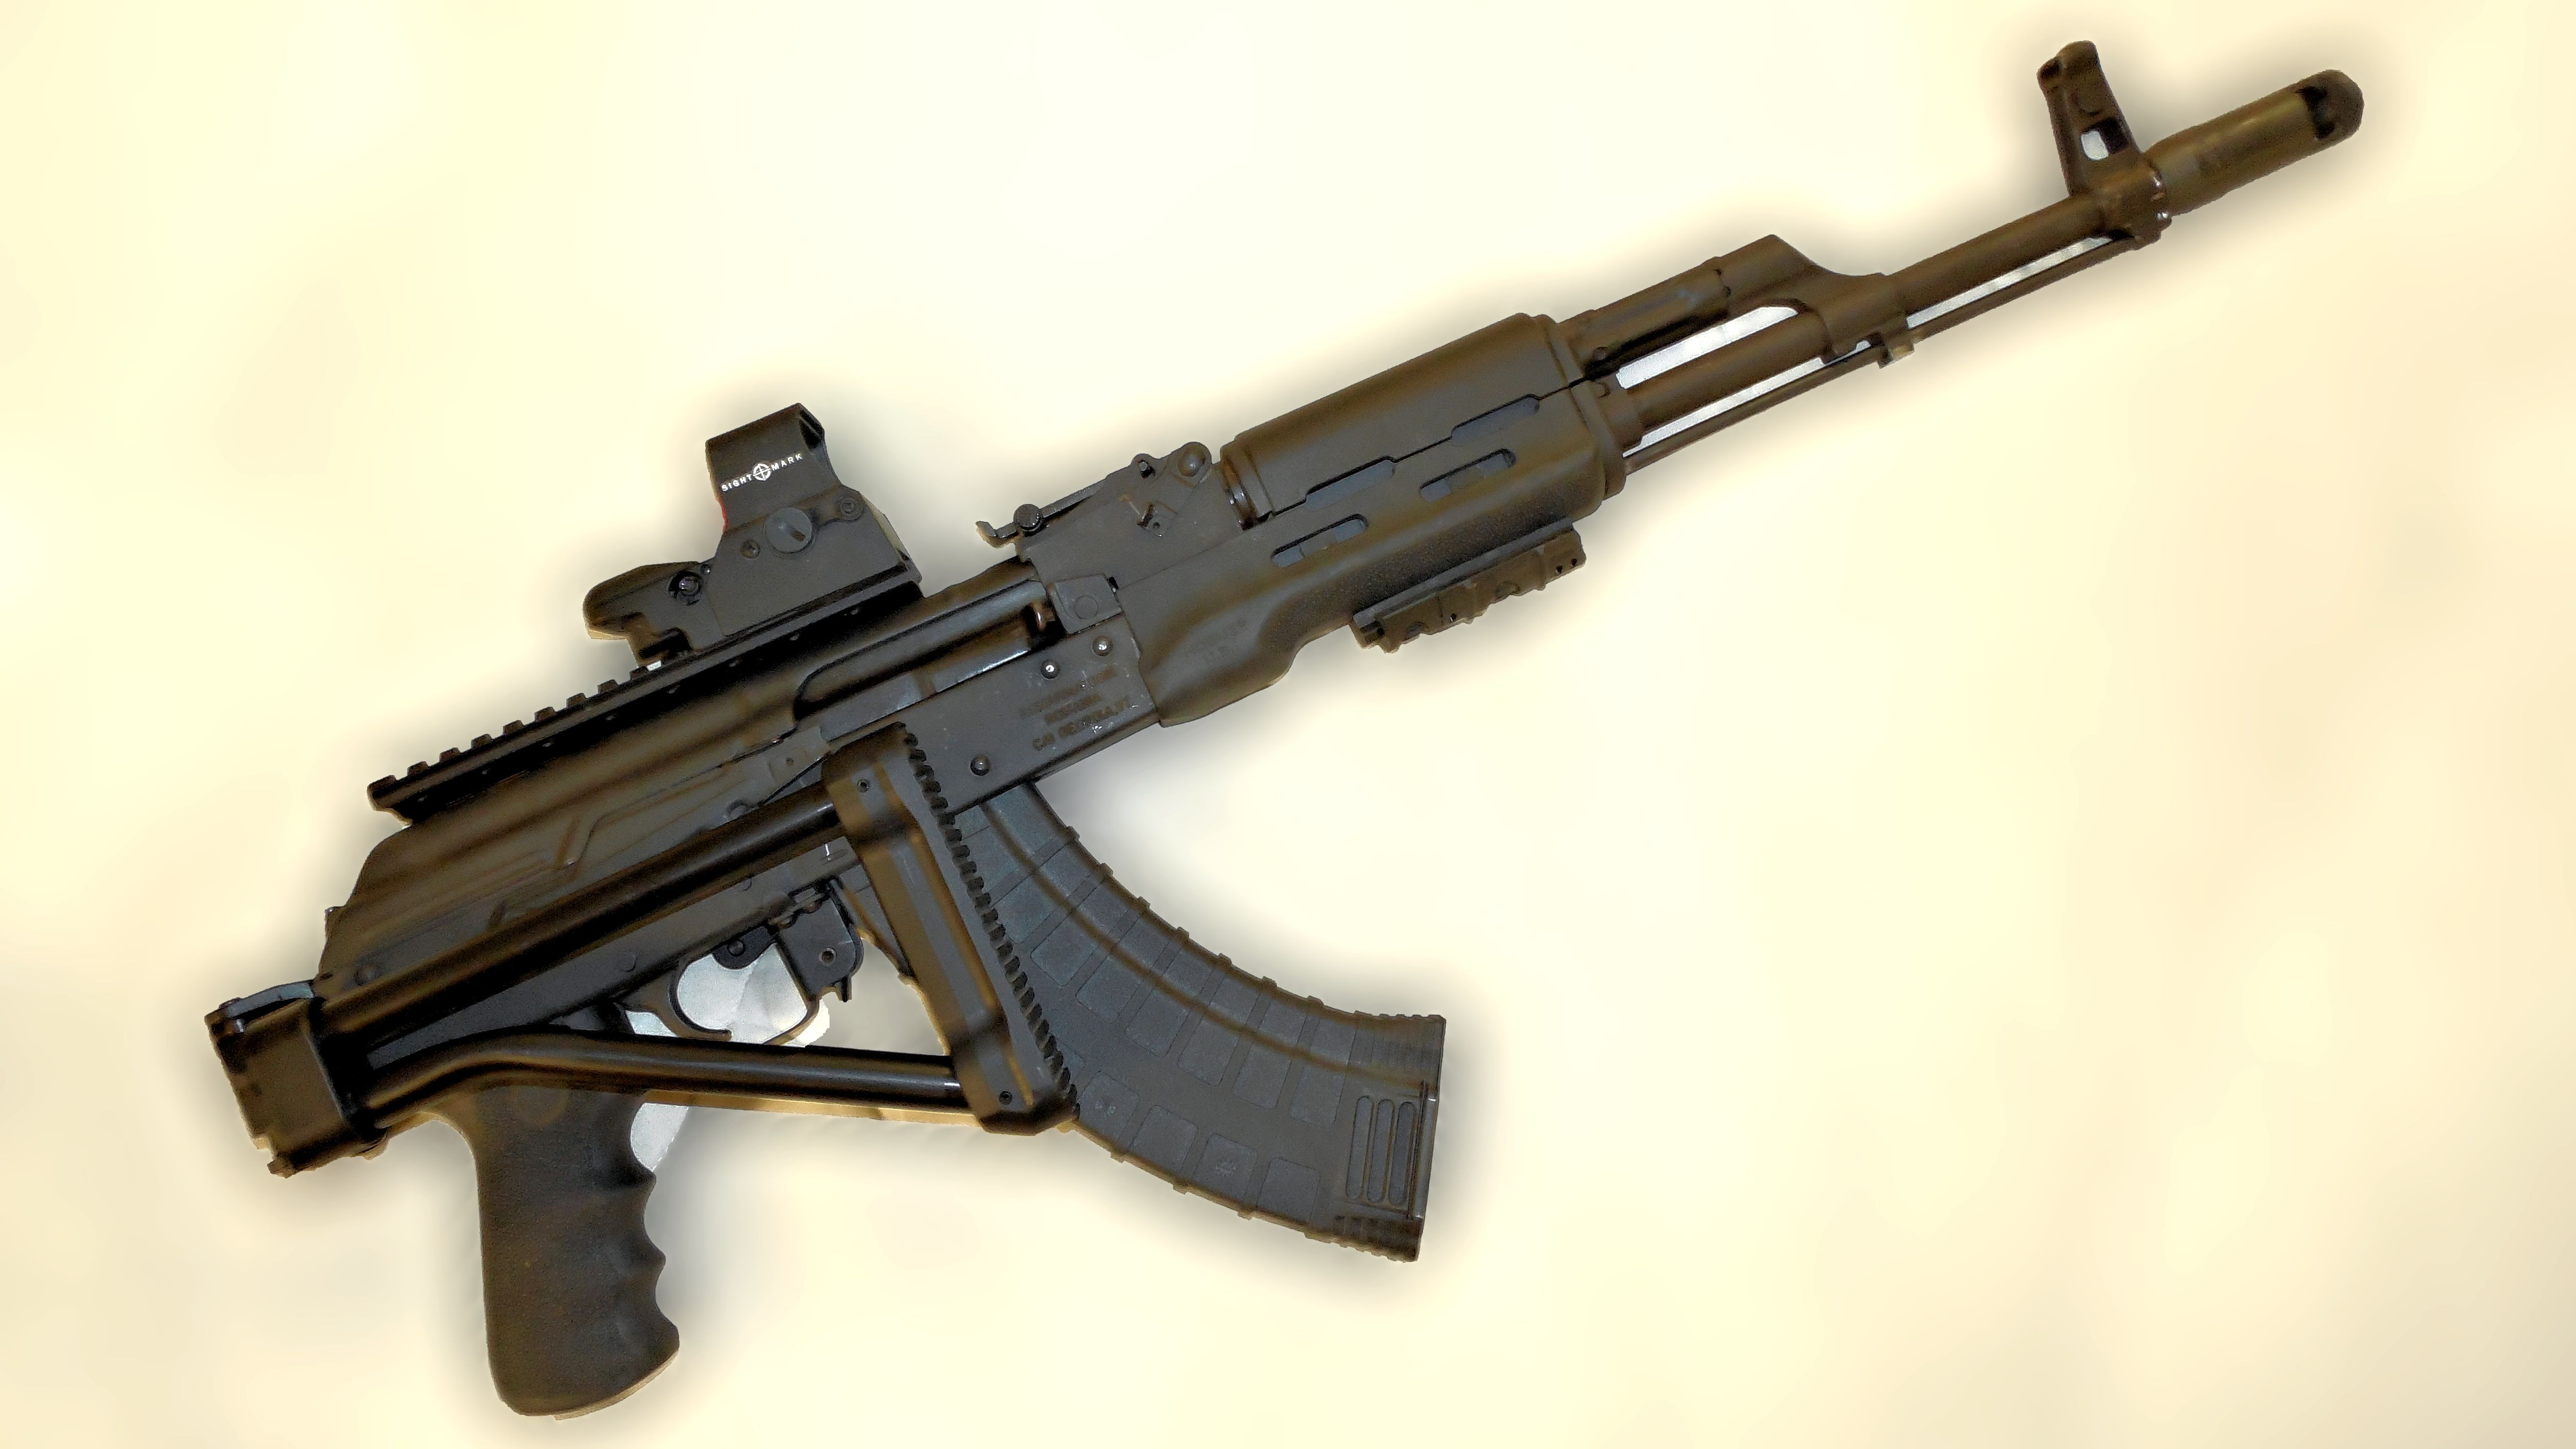 WASR-10, Romanian variant of the